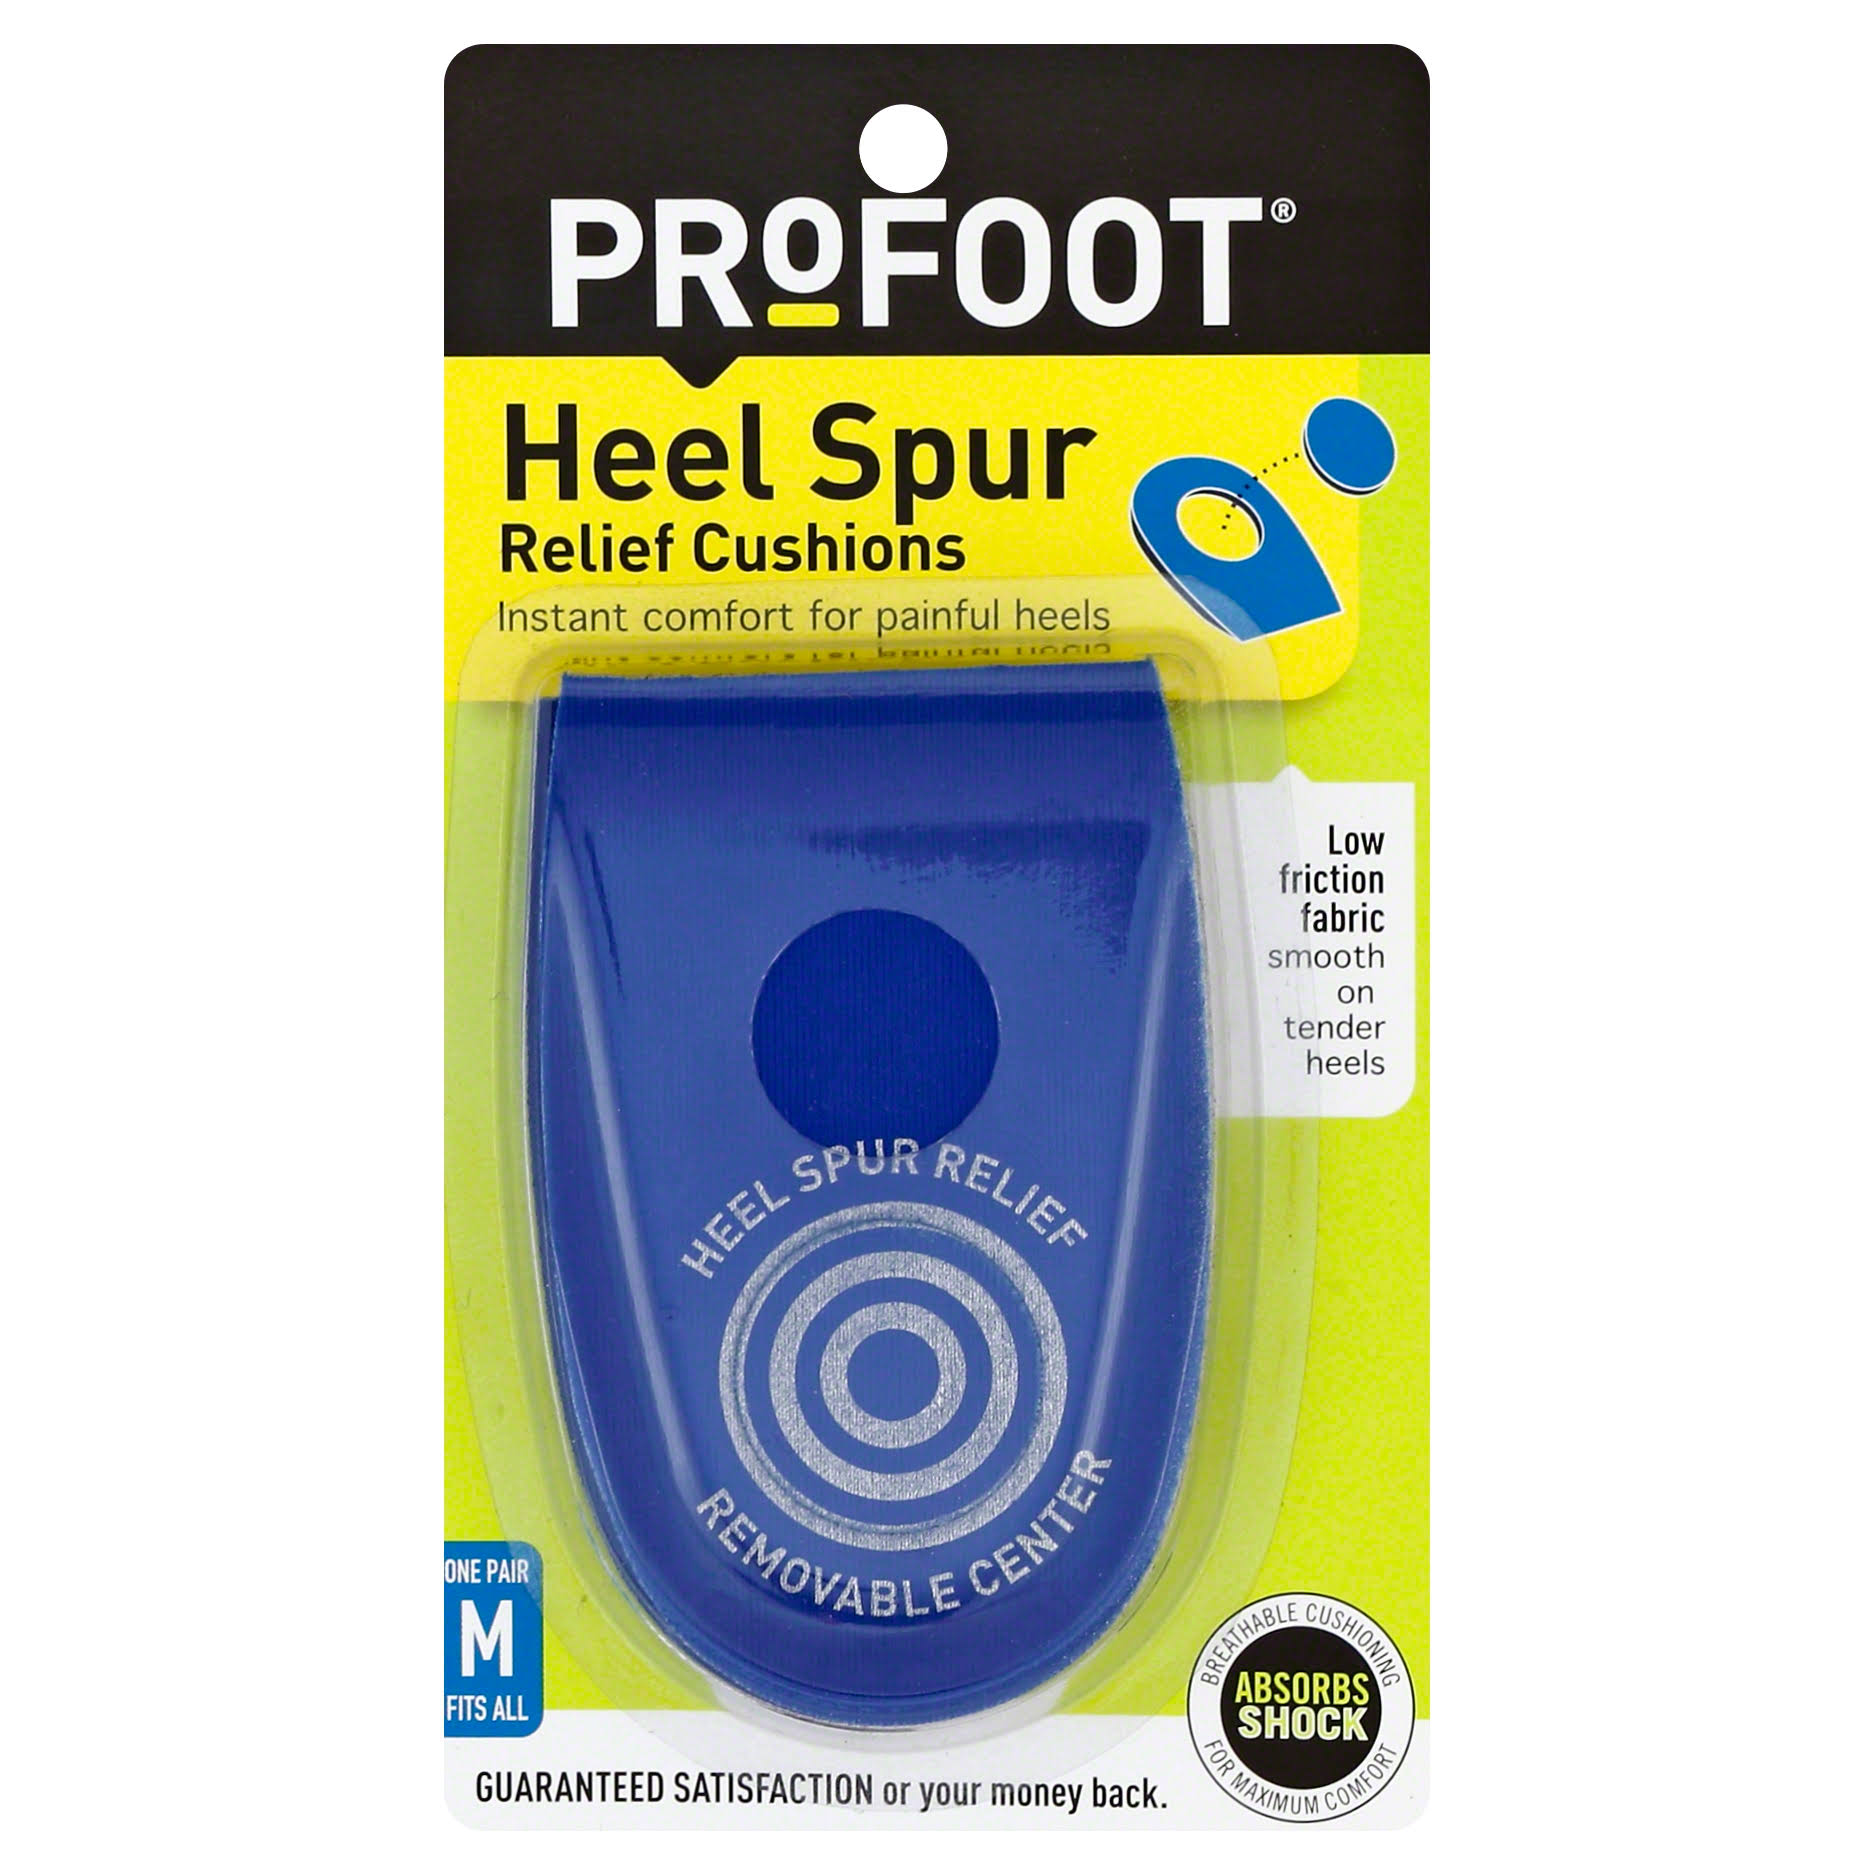 Profoot Heel Spur Relief Cushions, Men's, Fits All